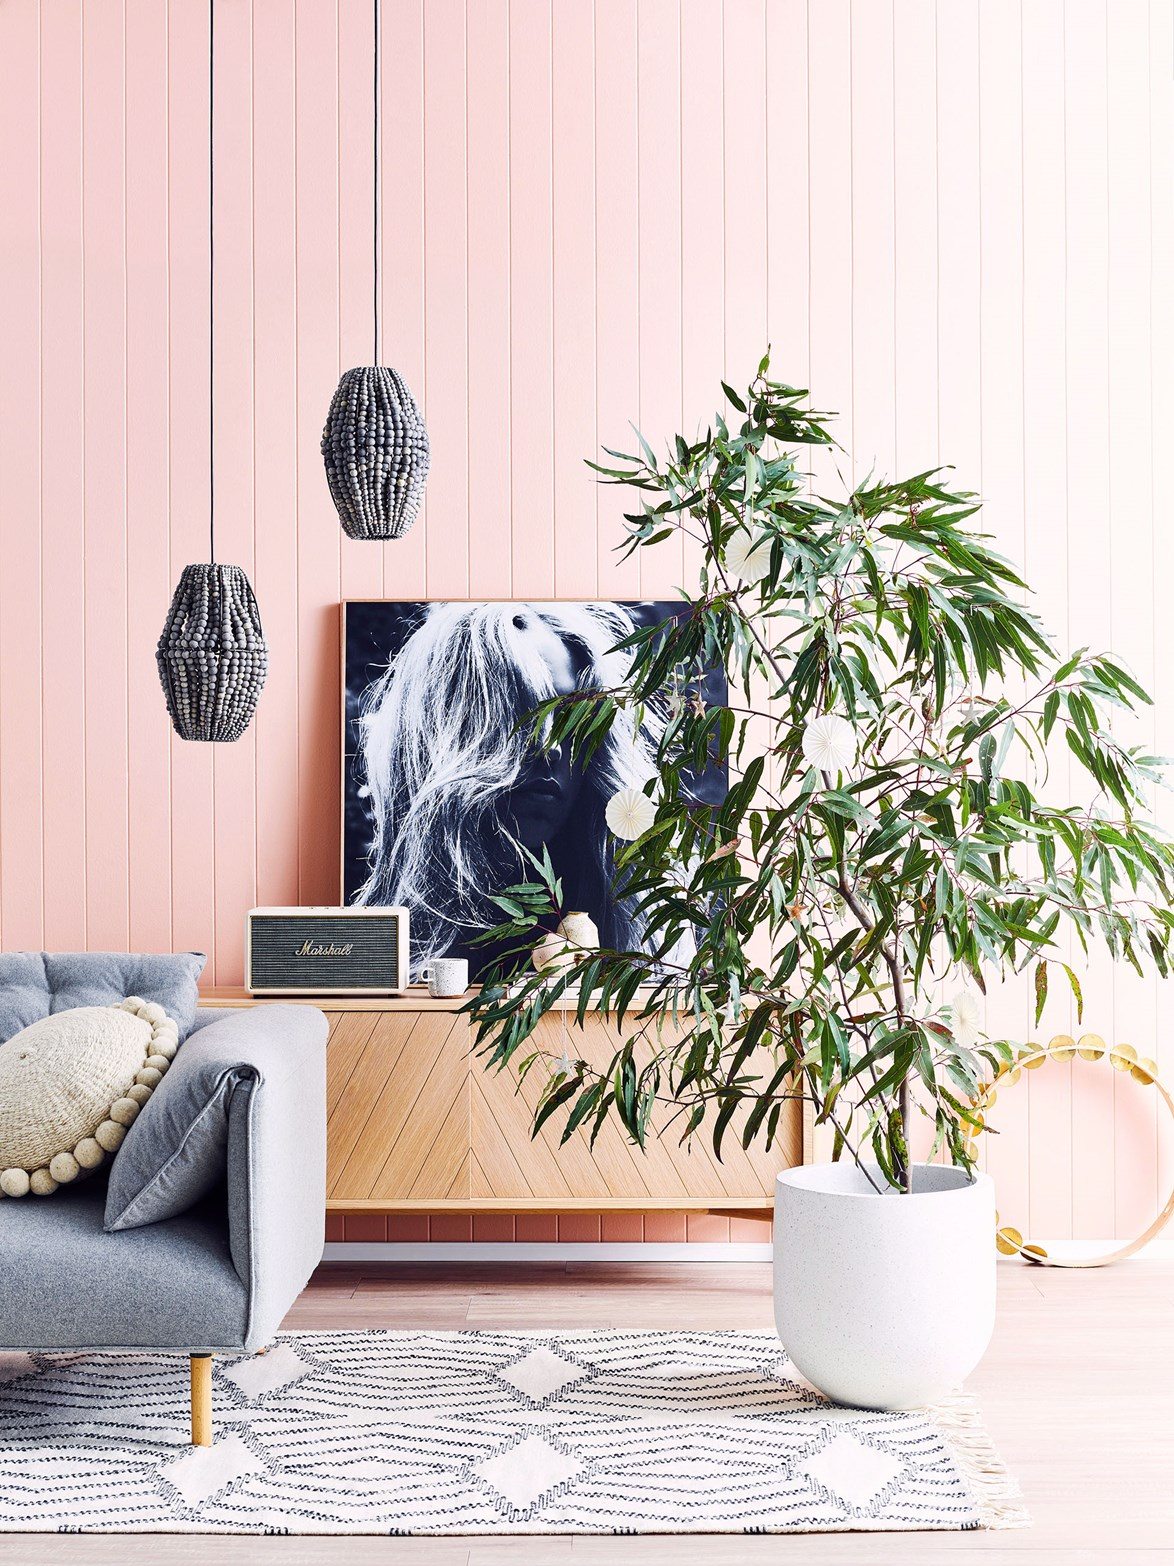 Here, a long-leaf fig feels festive while blending in with the existing decor.